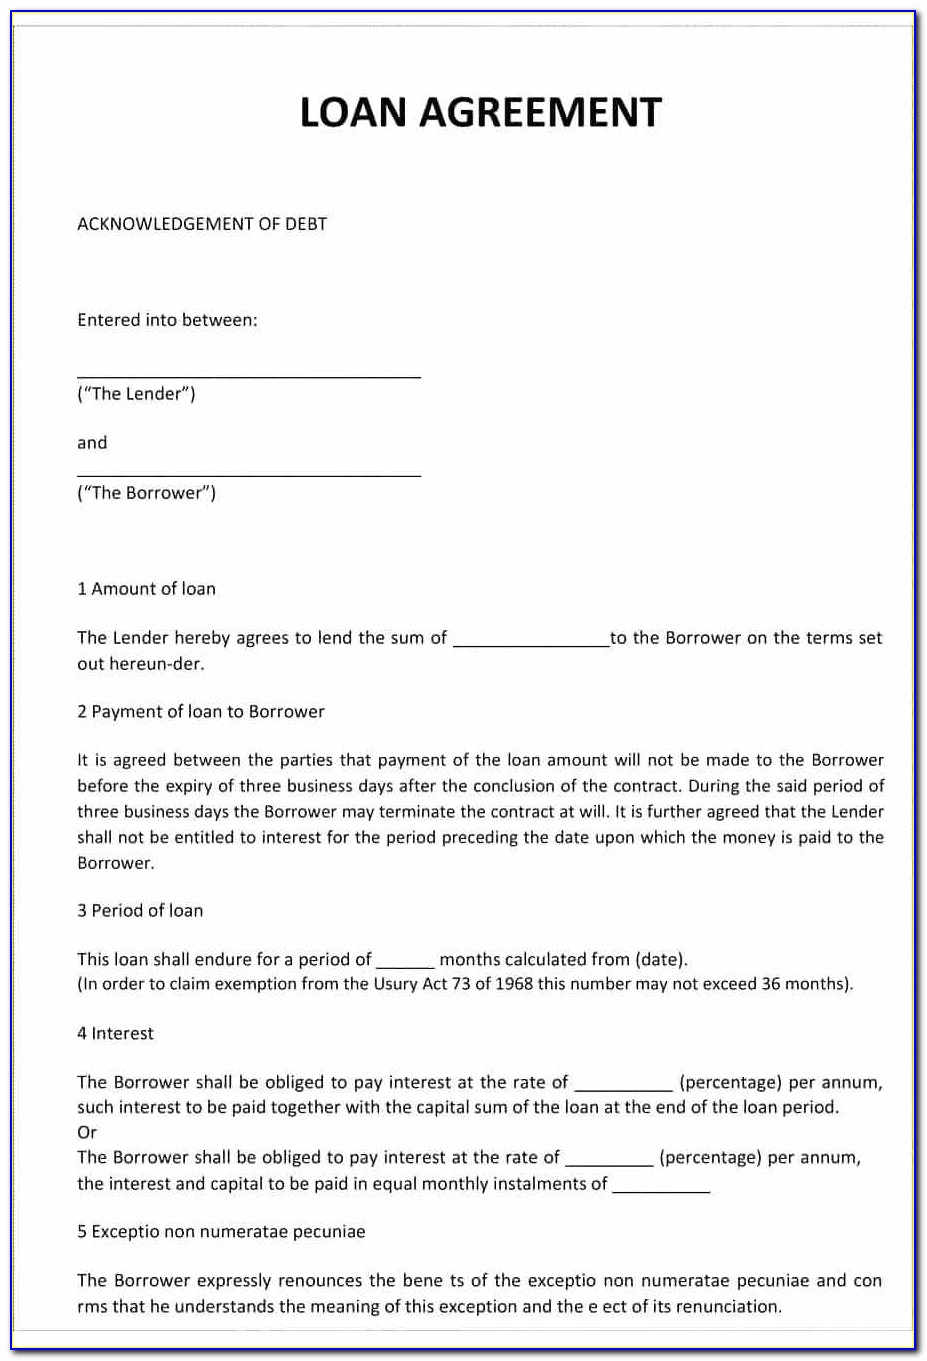 Personal Loan Contract Template Free Download